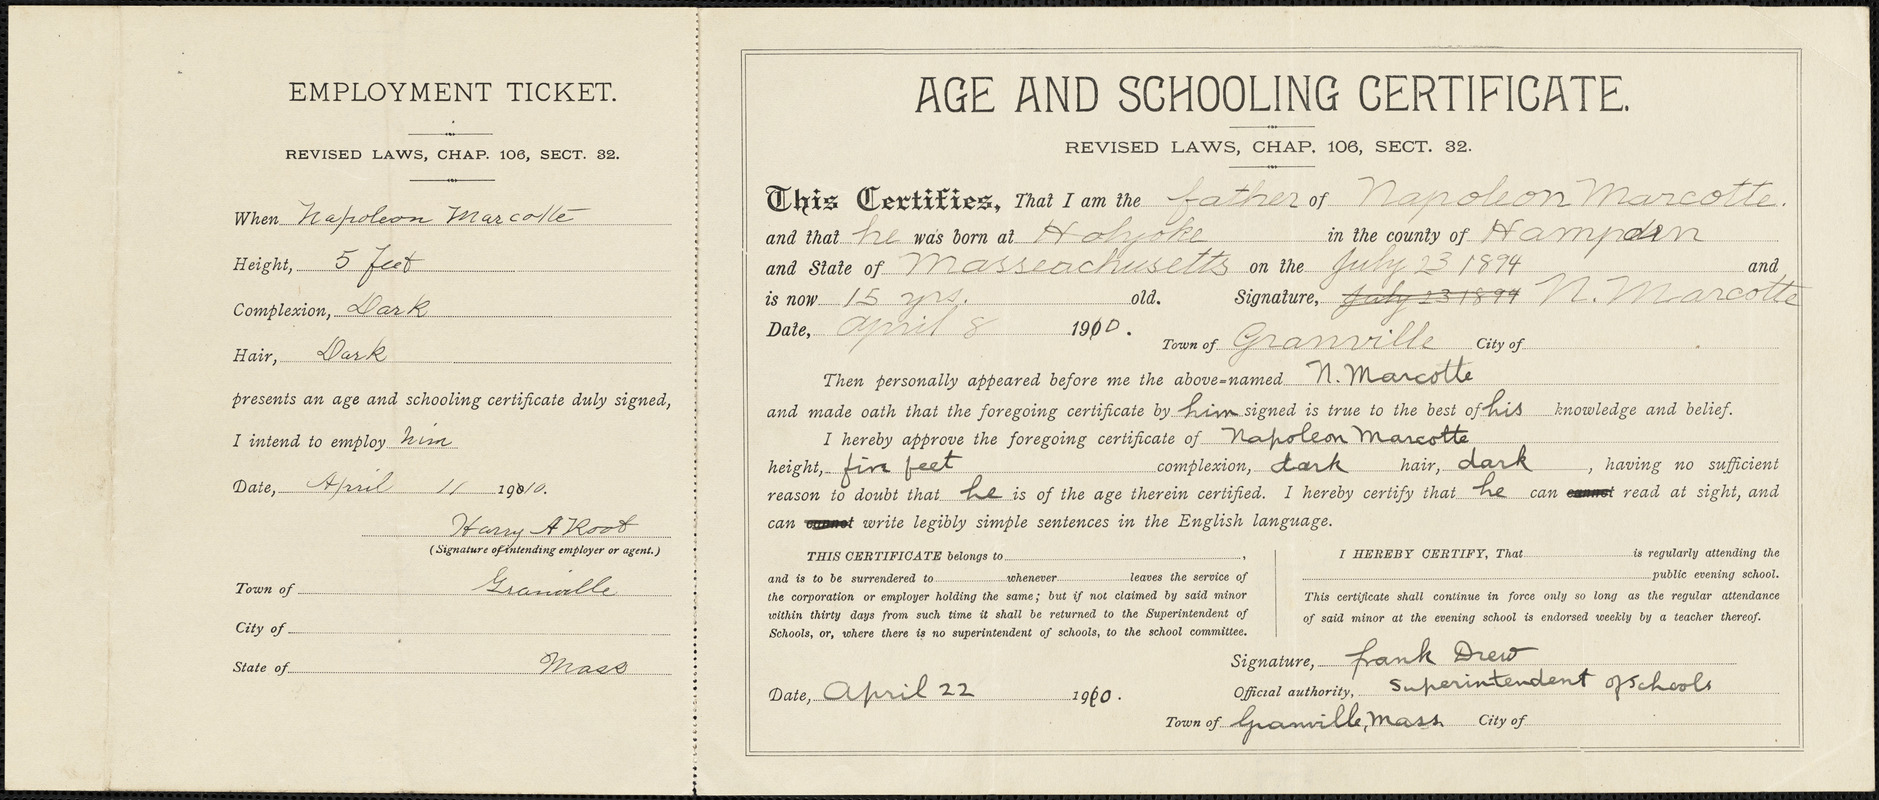 Age and schooling certificate, Napoleon Marcotte